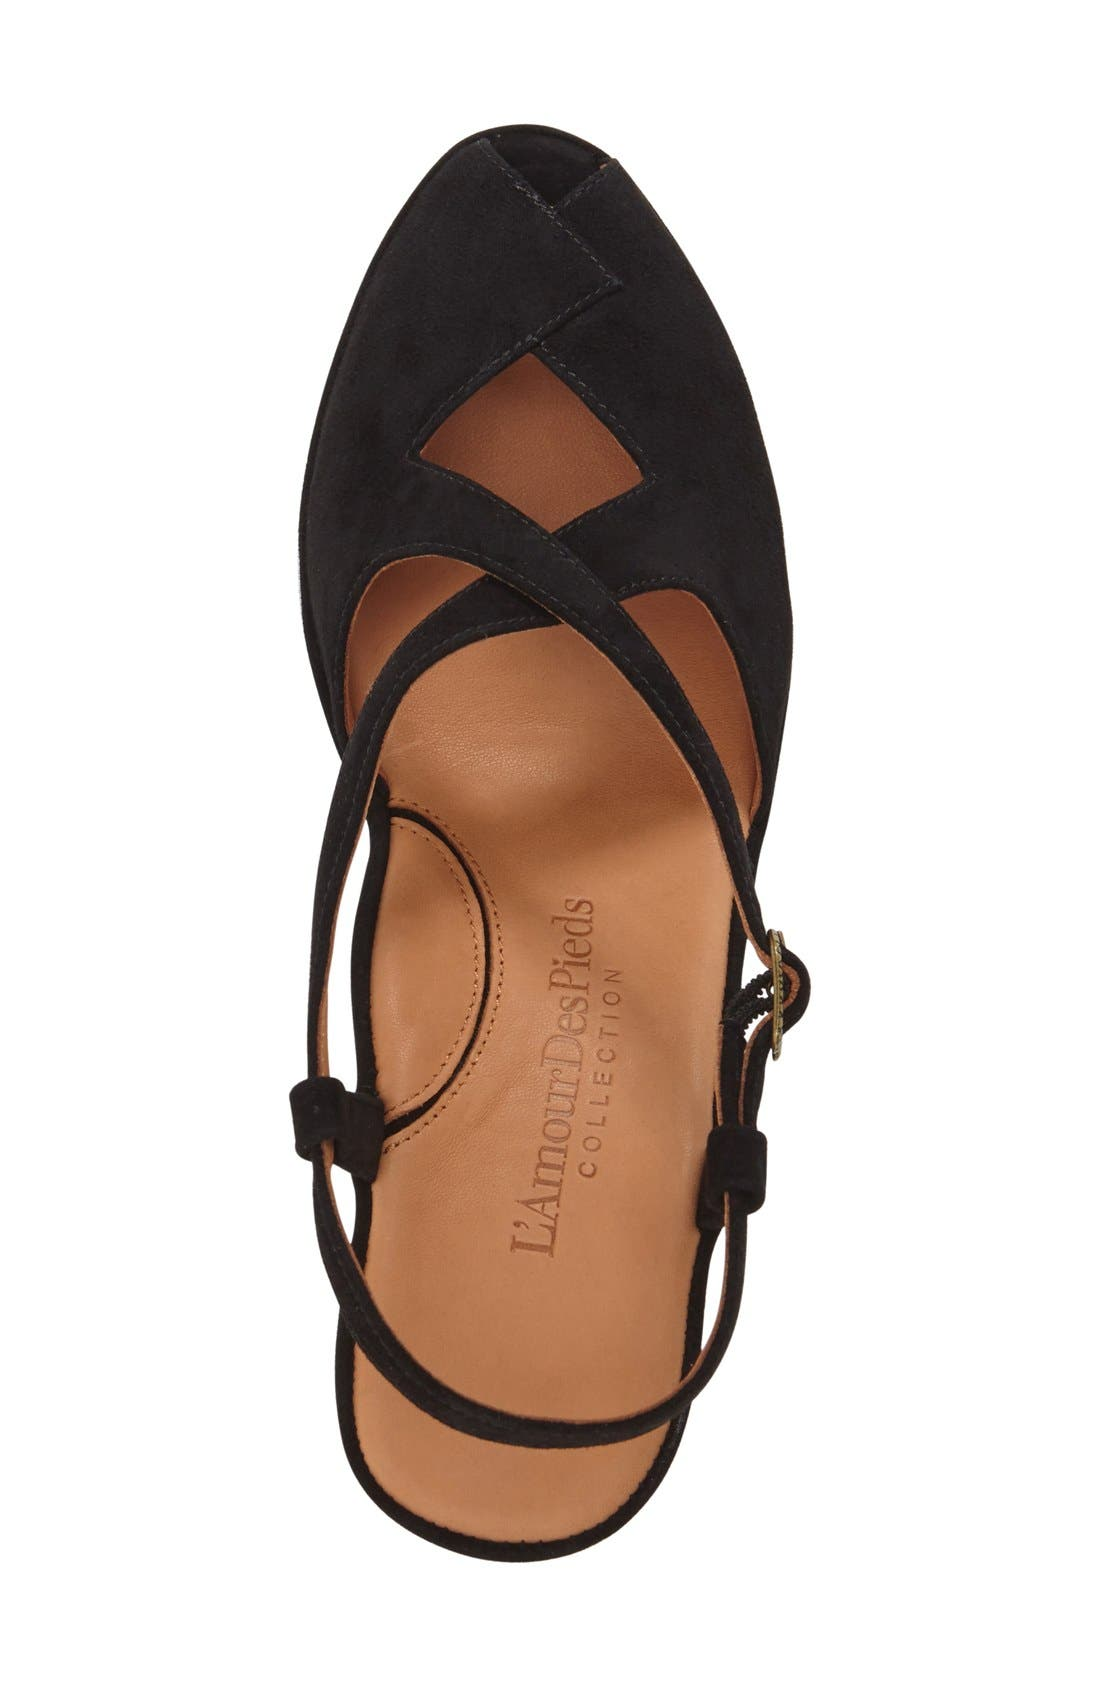 'Oraine' Sandal,                             Alternate thumbnail 3, color,                             BLACK SUEDE LEATHER